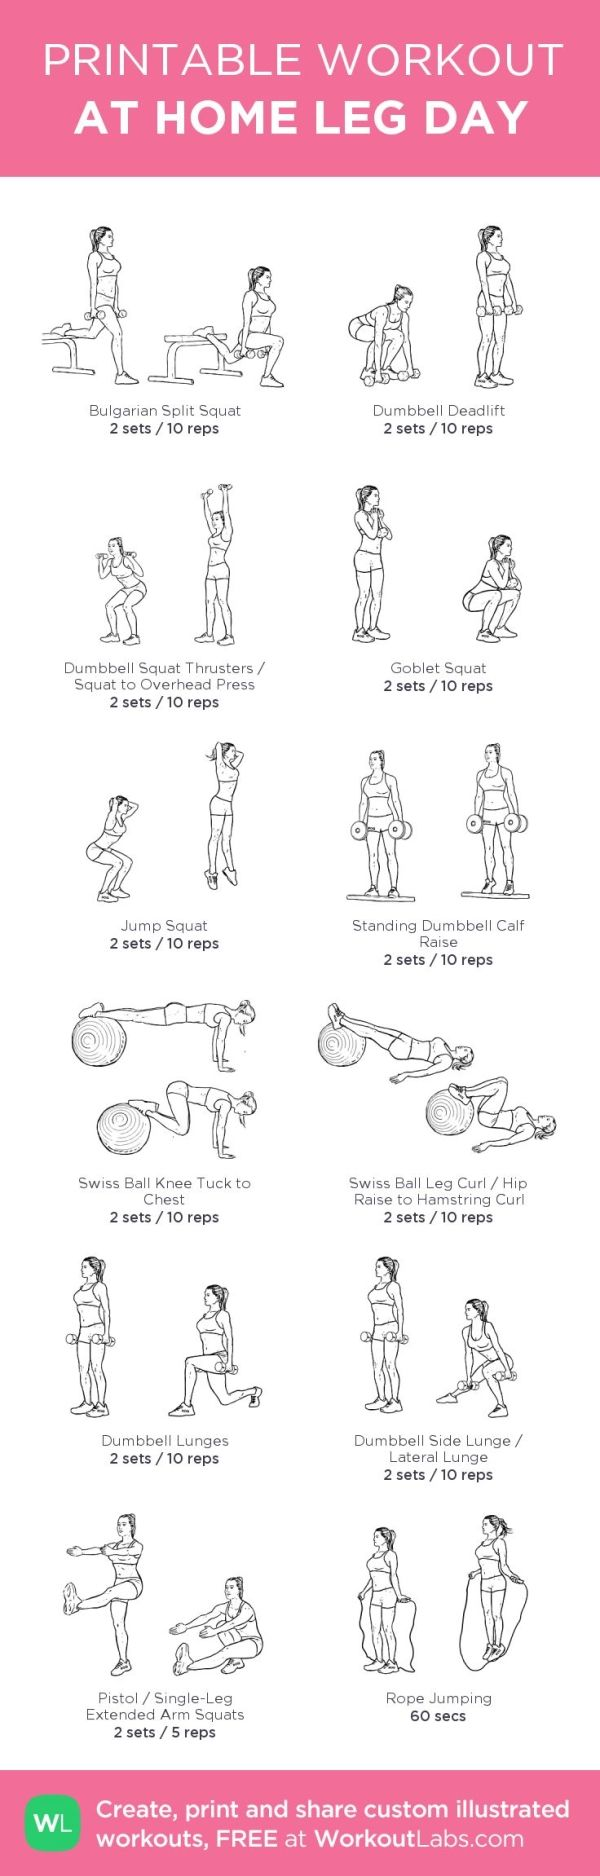 At-home leg day workout. Build custom workout routines or browse pre ...